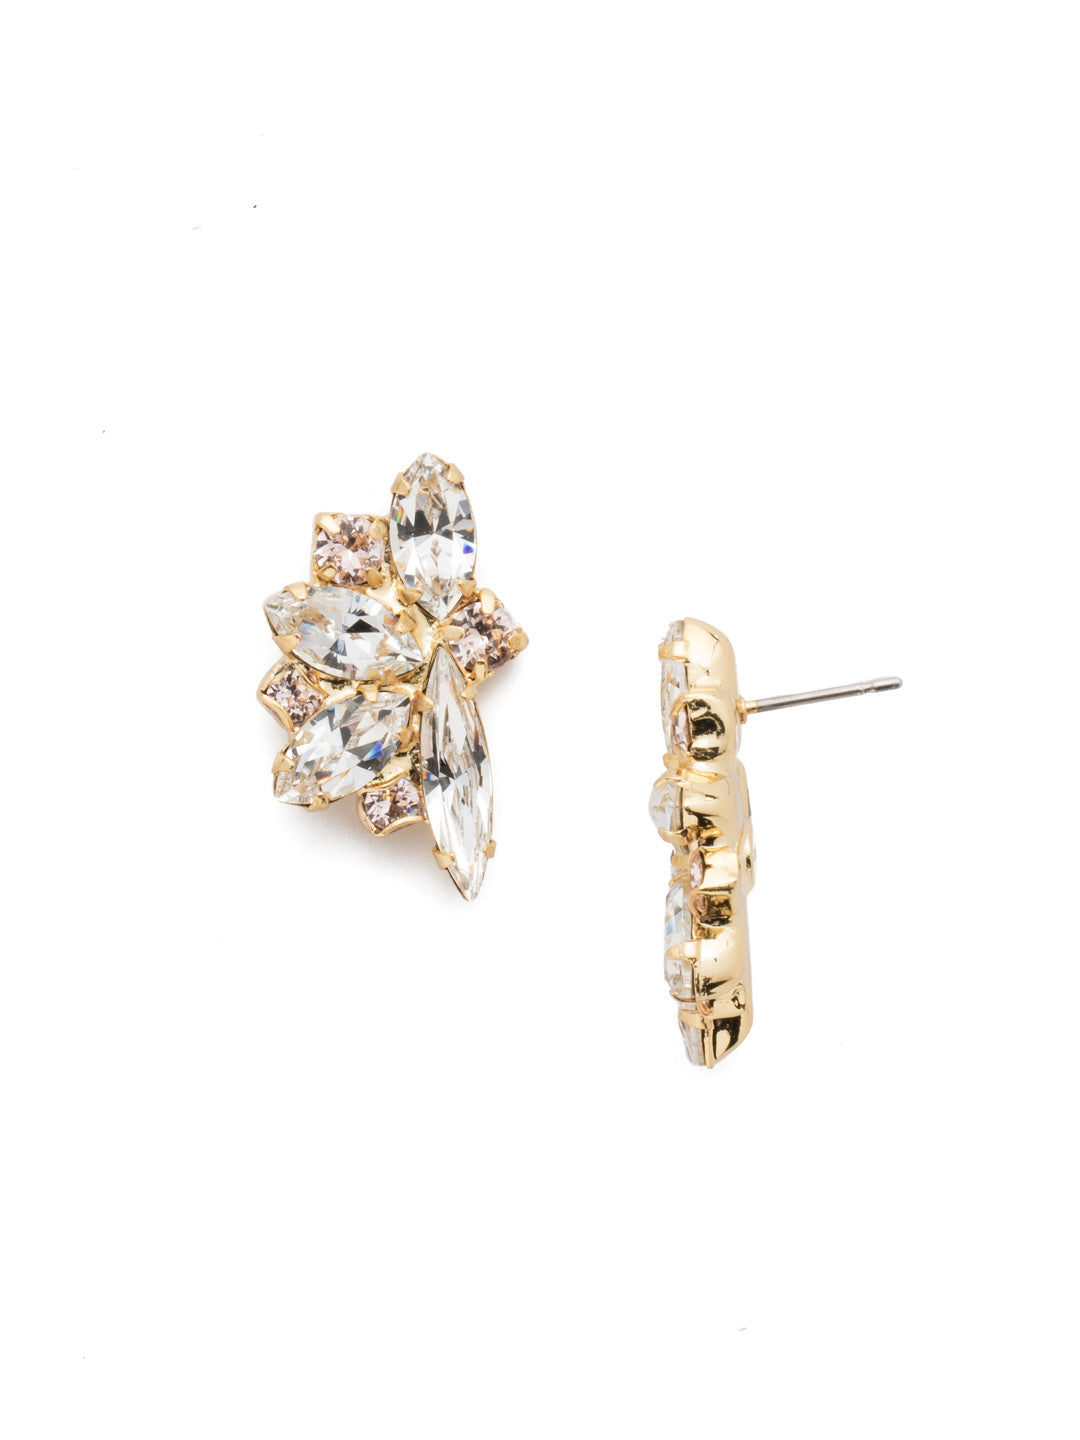 Fanned Navette Crystal Post Earring - ECZ21BGPLS